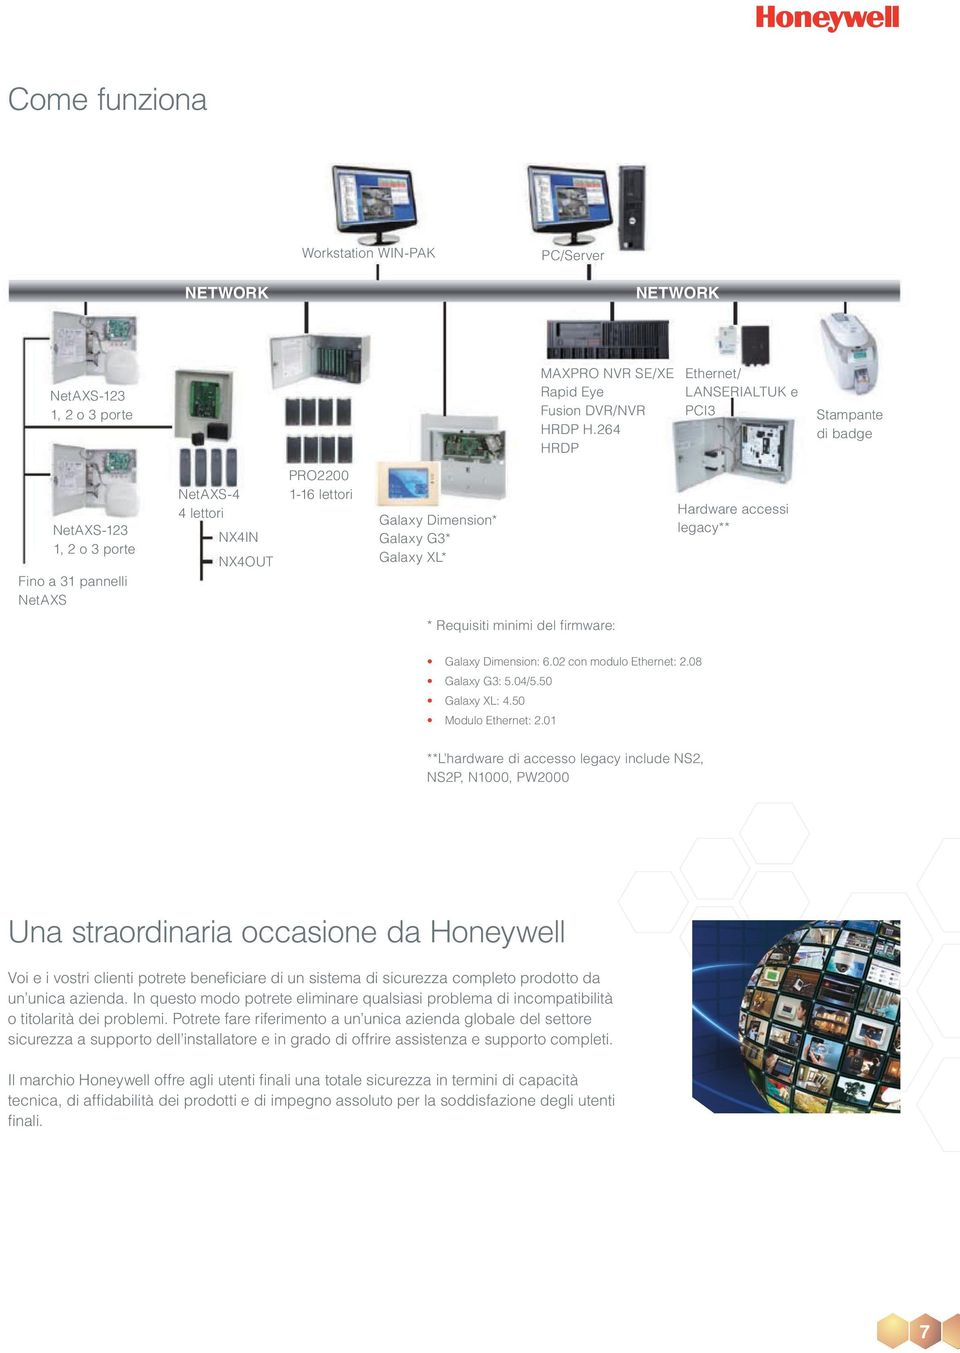 XL* Hardware accessi legacy** * Requisiti minimi del firmware: Galaxy Dimension: 6.02 con modulo Ethernet: 2.08 Galaxy G3: 5.04/5.50 Galaxy XL: 4.50 Modulo Ethernet: 2.